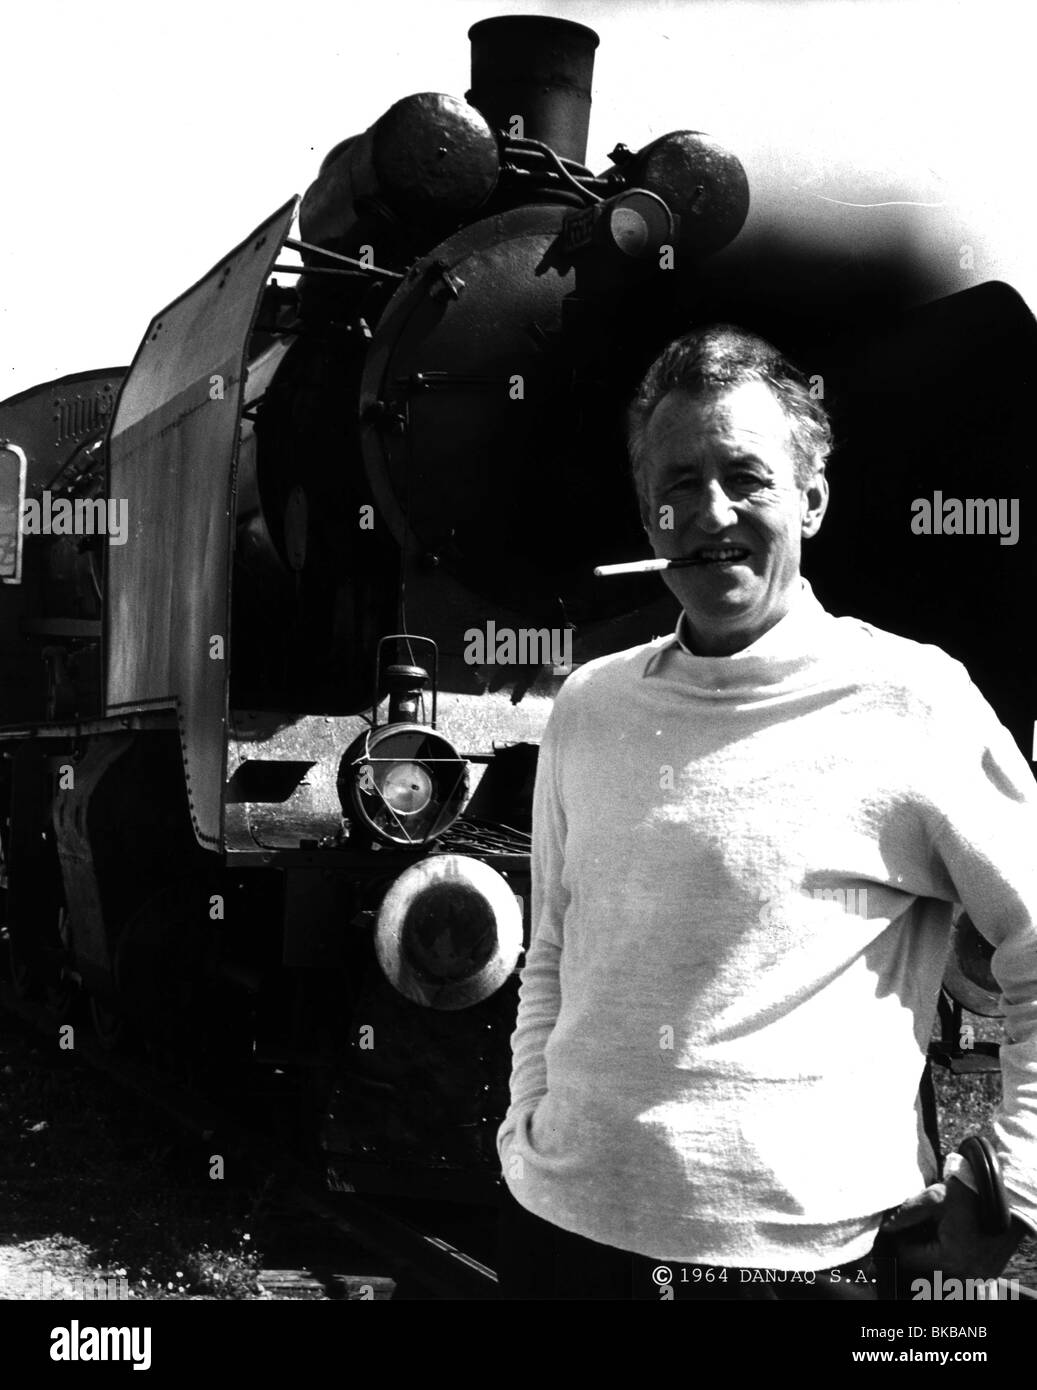 IAN FLEMING (WRI) Portrait 1964 Photo Stock